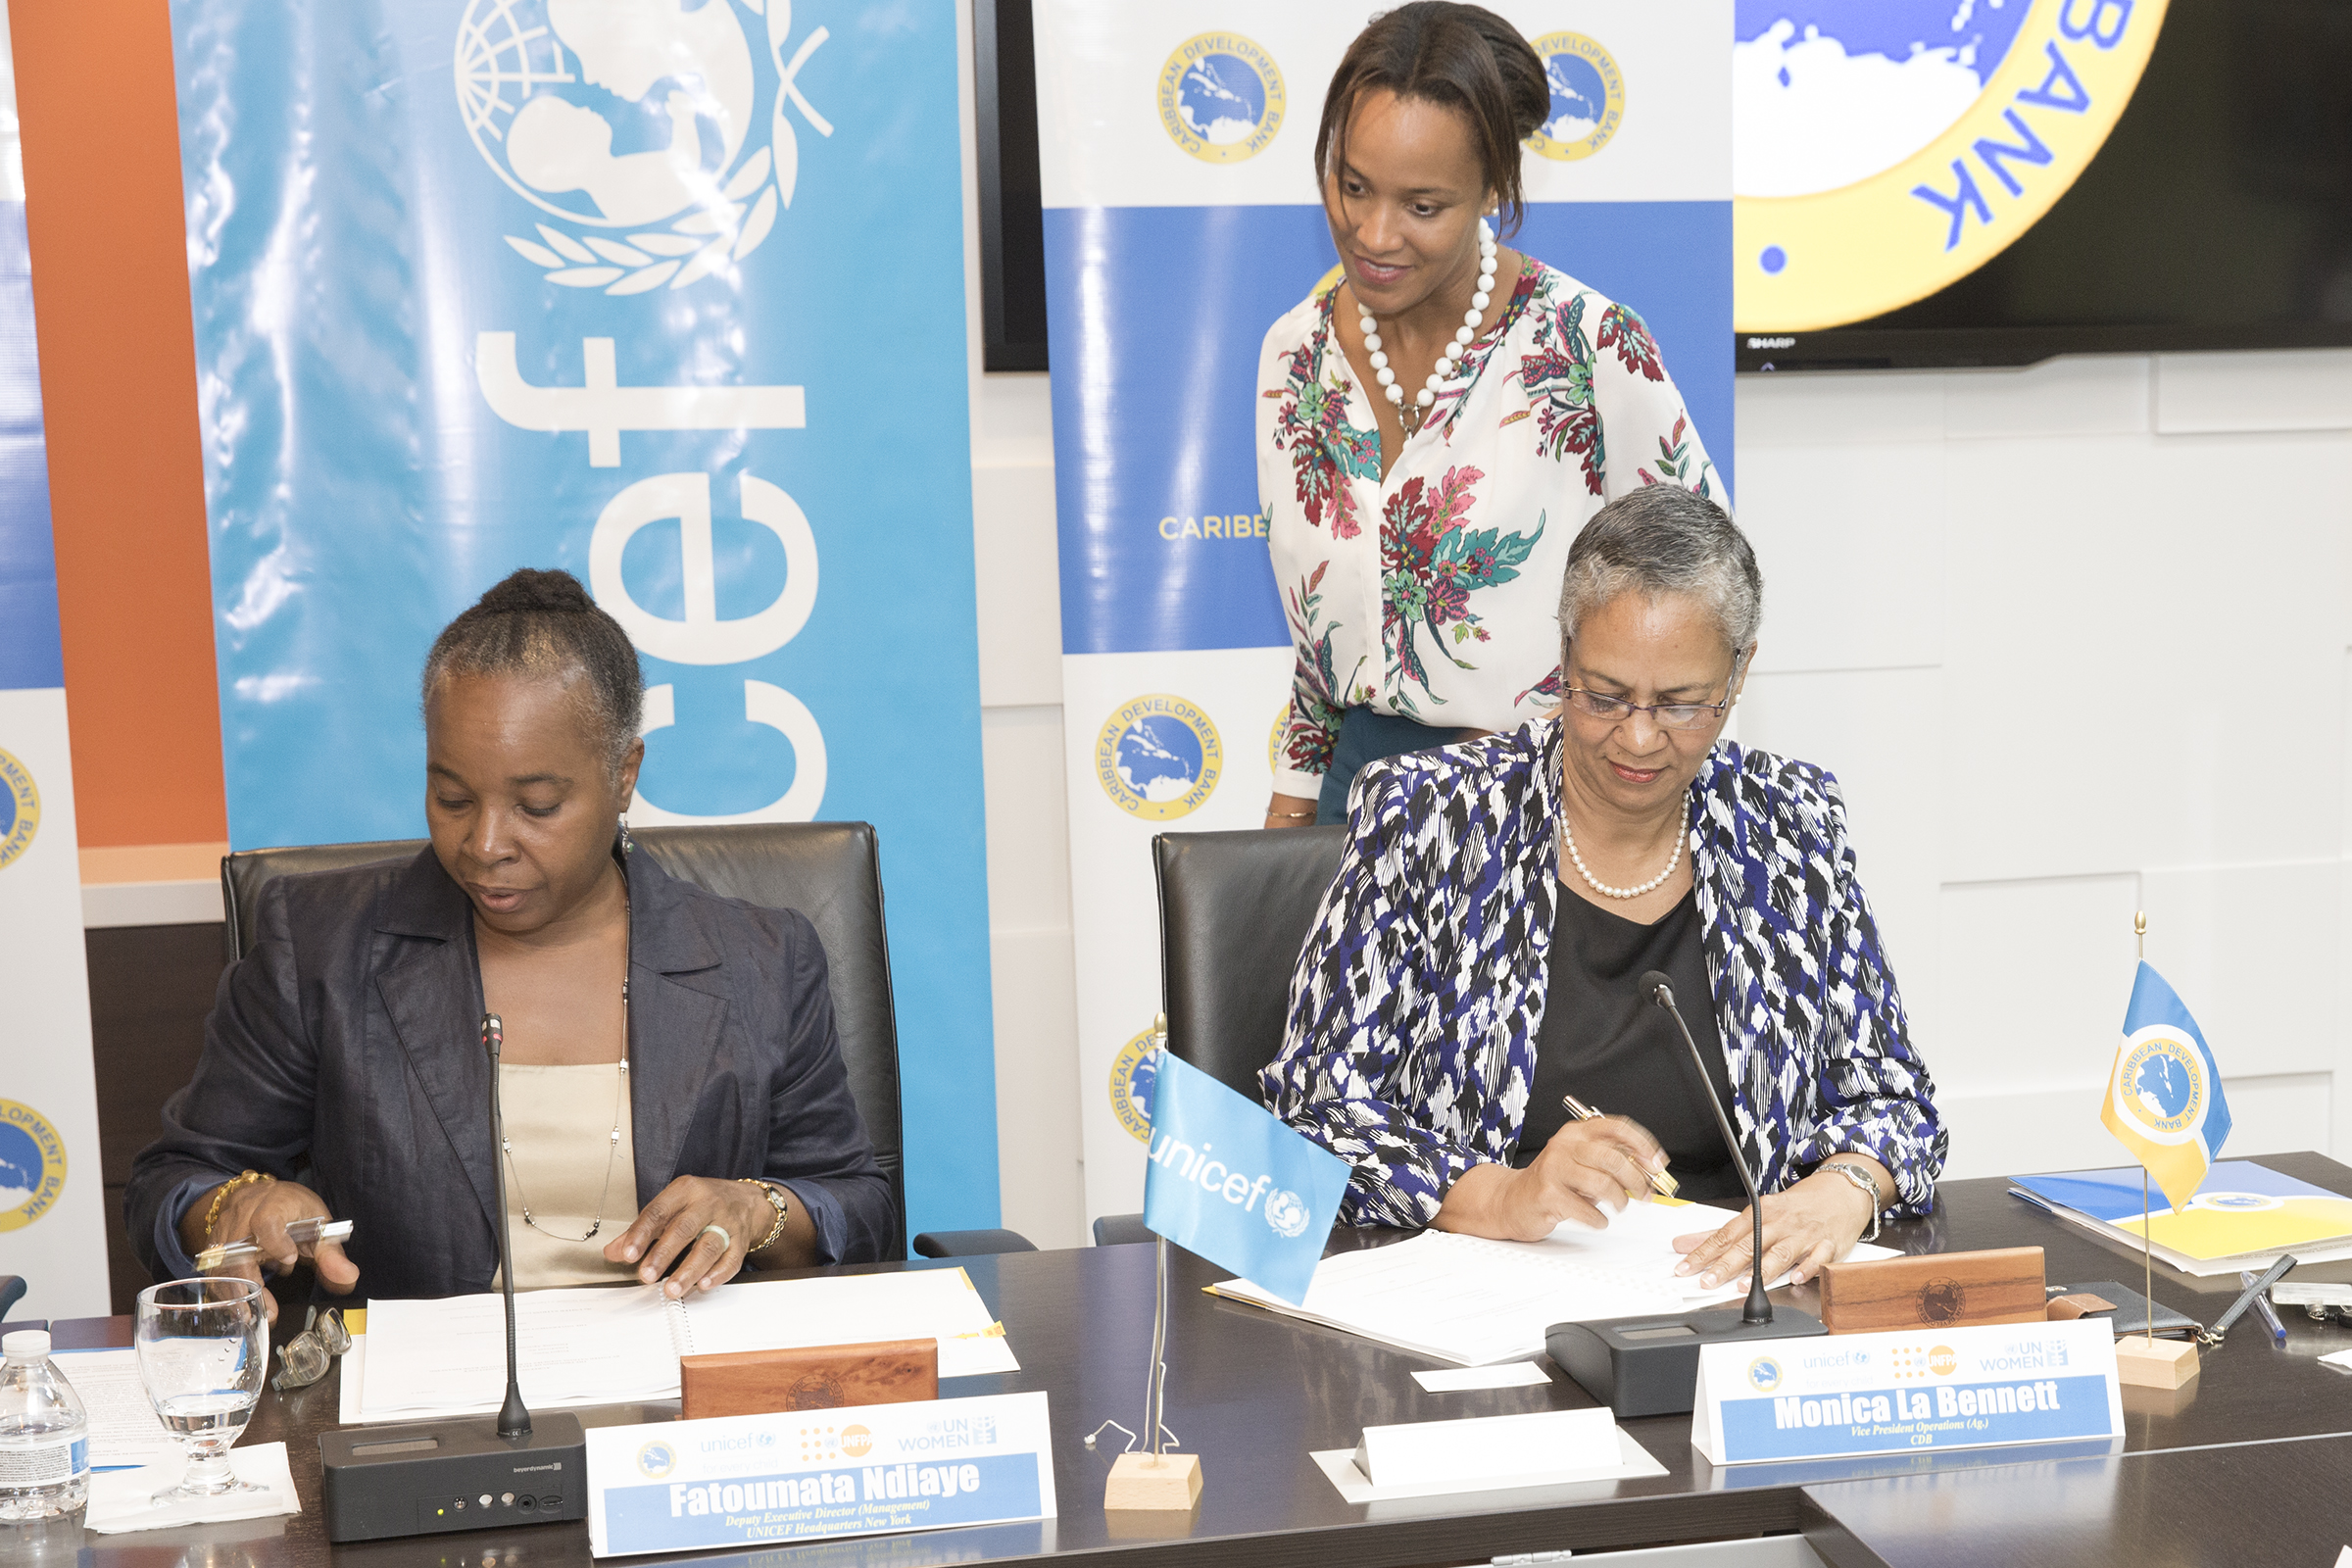 Fatoumata Ndiaye, Deputy Executive Director, UNICEF Headquarters, New York (left) and Monica La Bennett, Acting Vice-President (Operations), CDB (right).